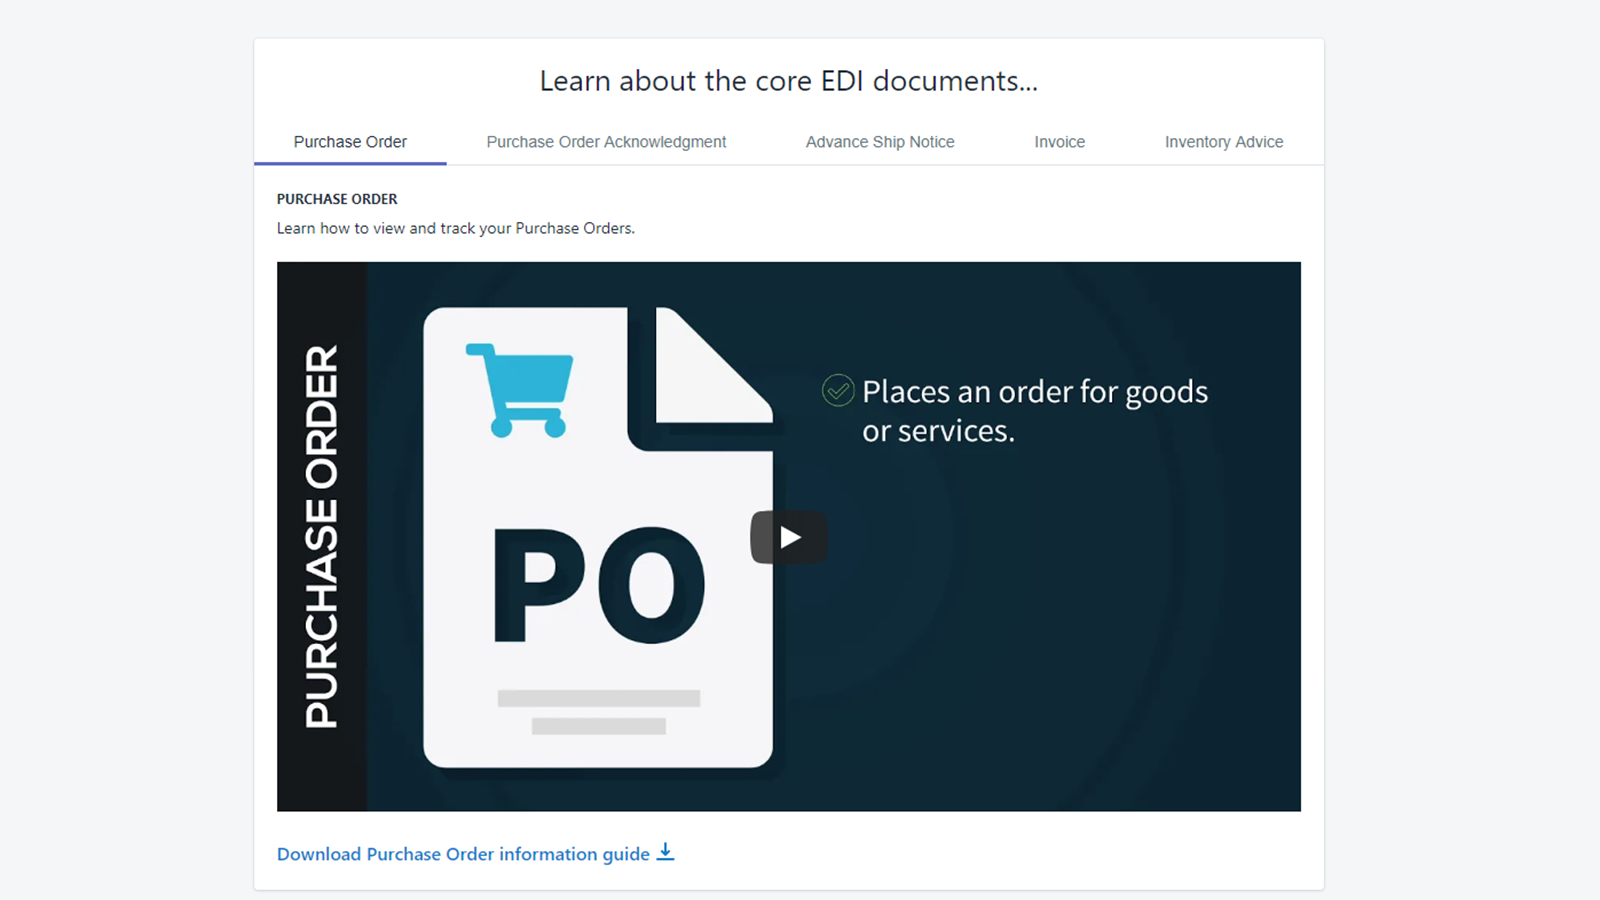 Access to expert EDI training videos and materials!